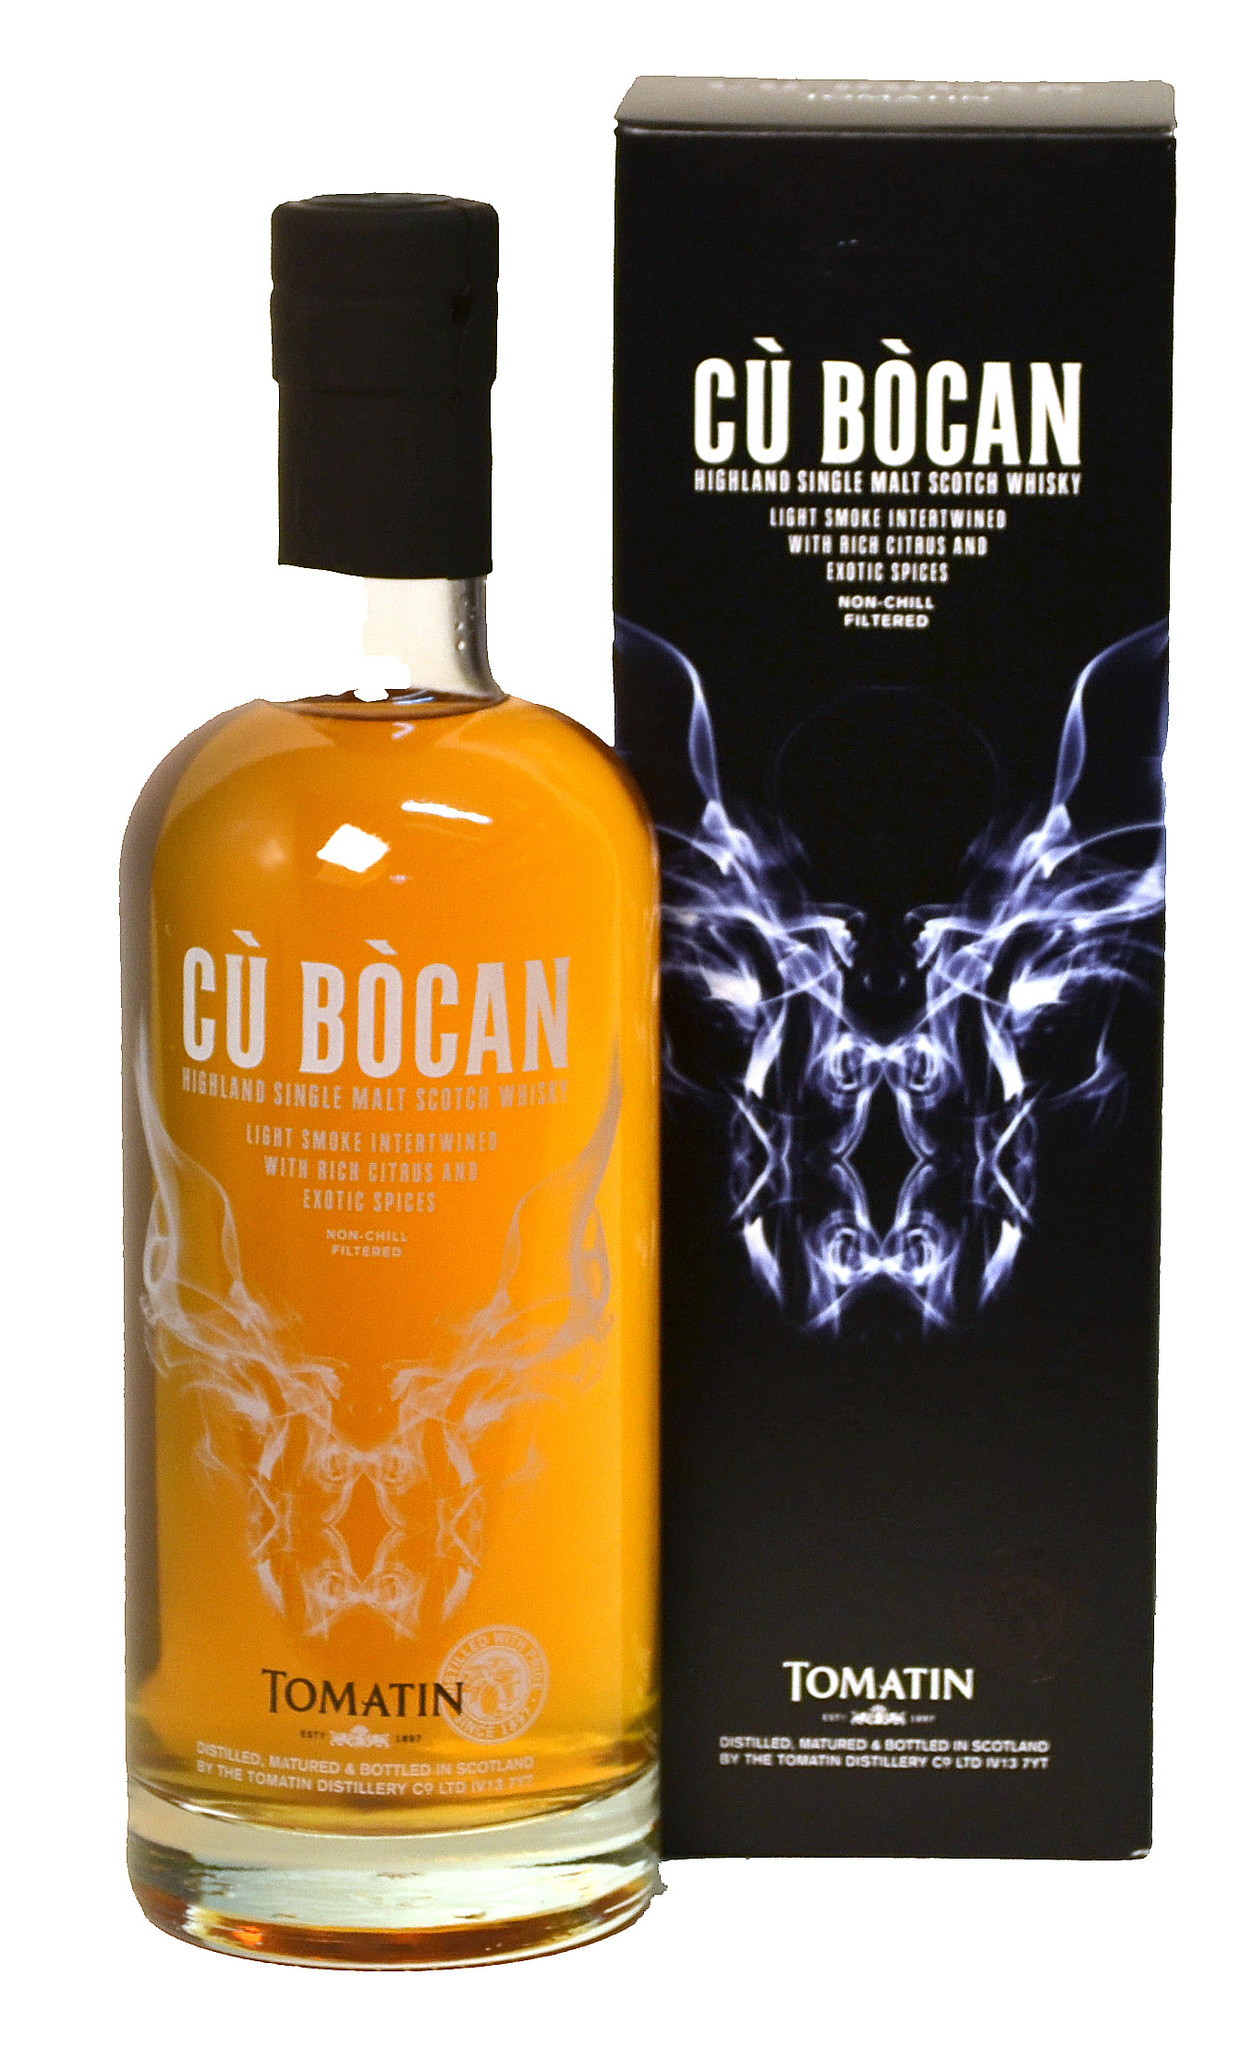 TOMATIN Gù Bocan excotic spiced